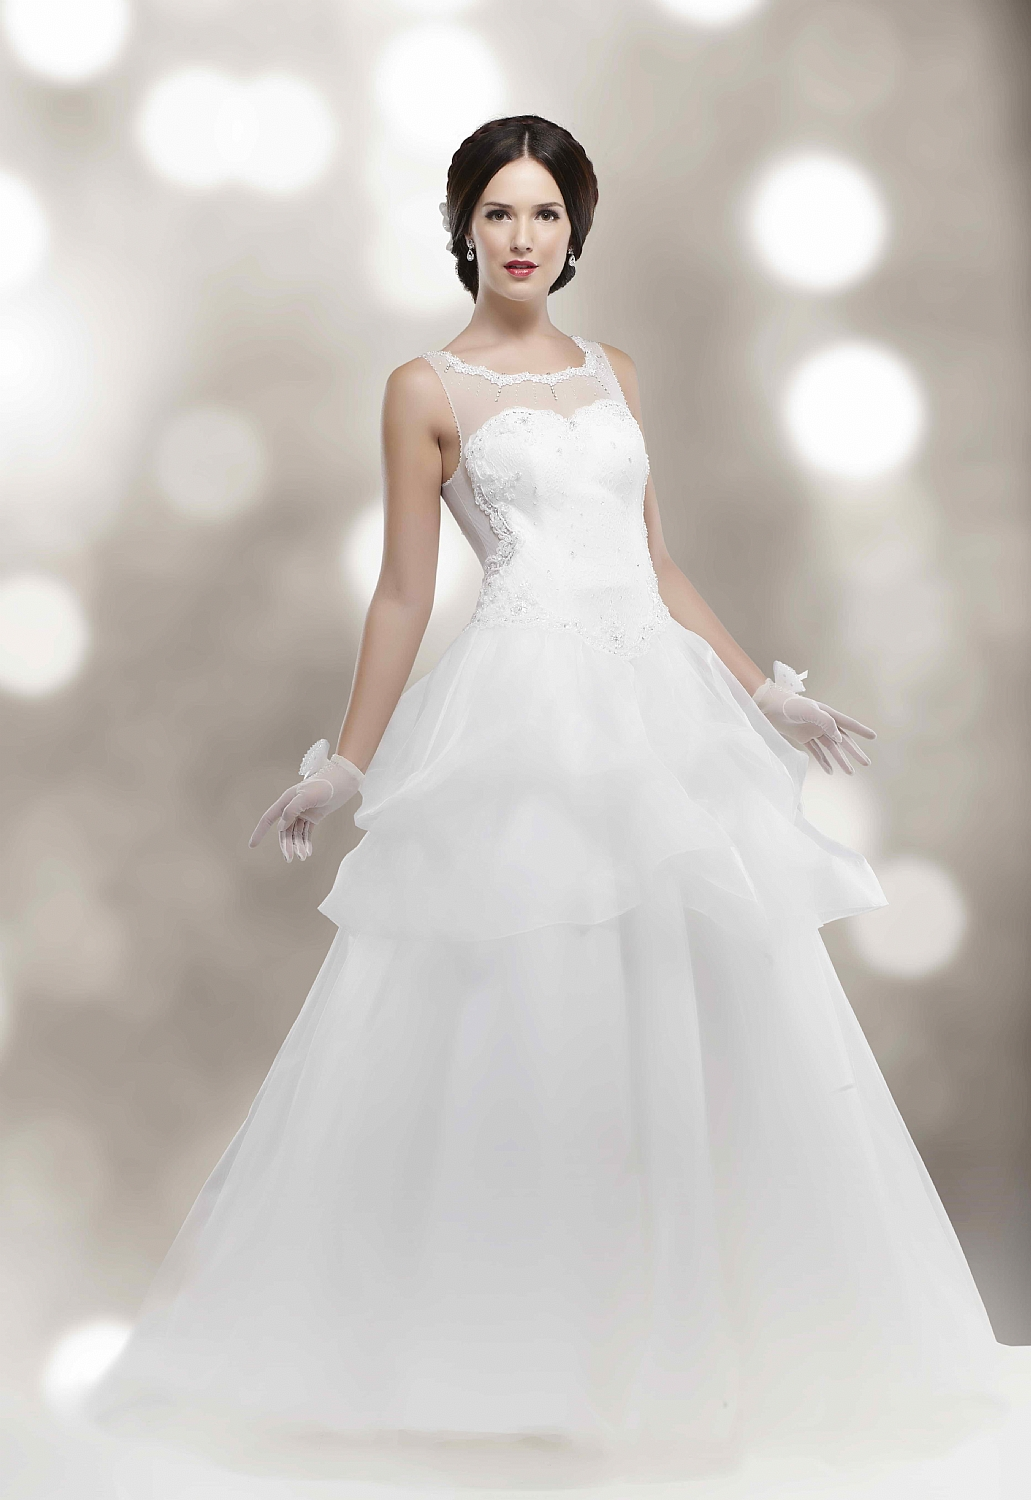 Wedding Gown By May May Bridals 360weddings